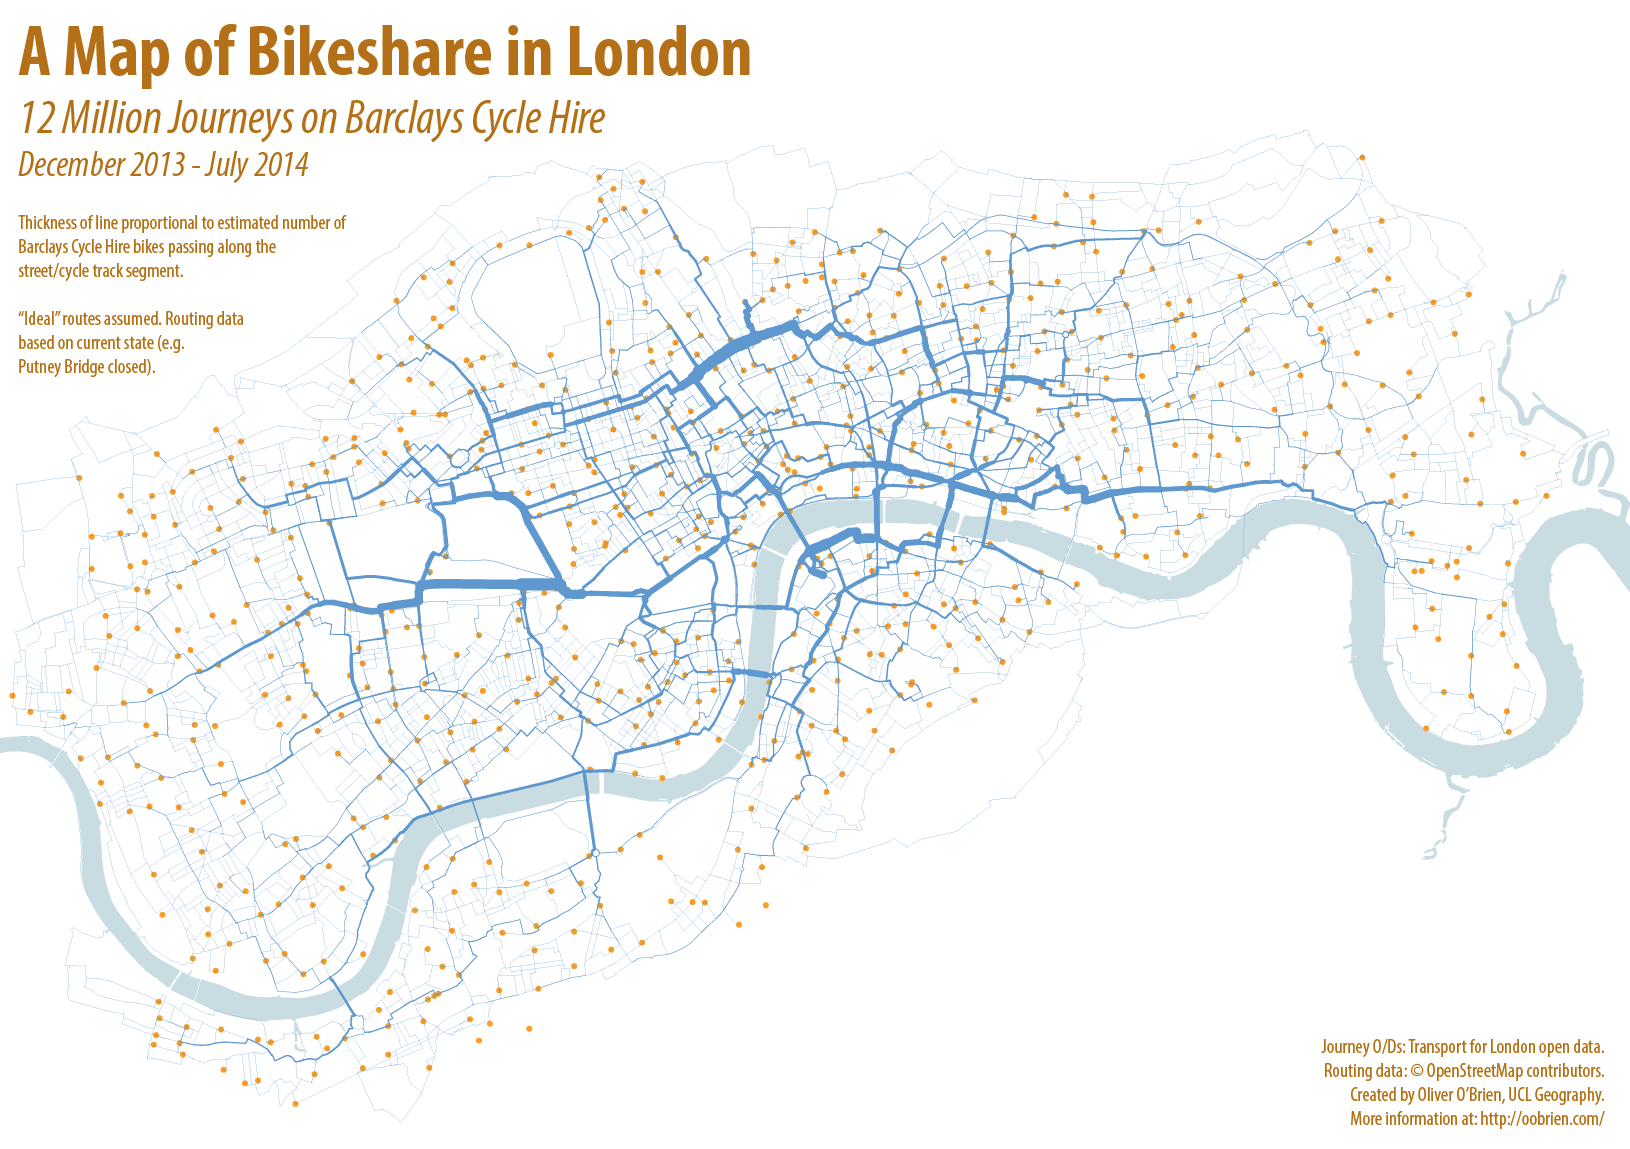 Barclays Cycle Hire Map From Putney to Poplar: 12 Million Journeys on the London Bikeshare